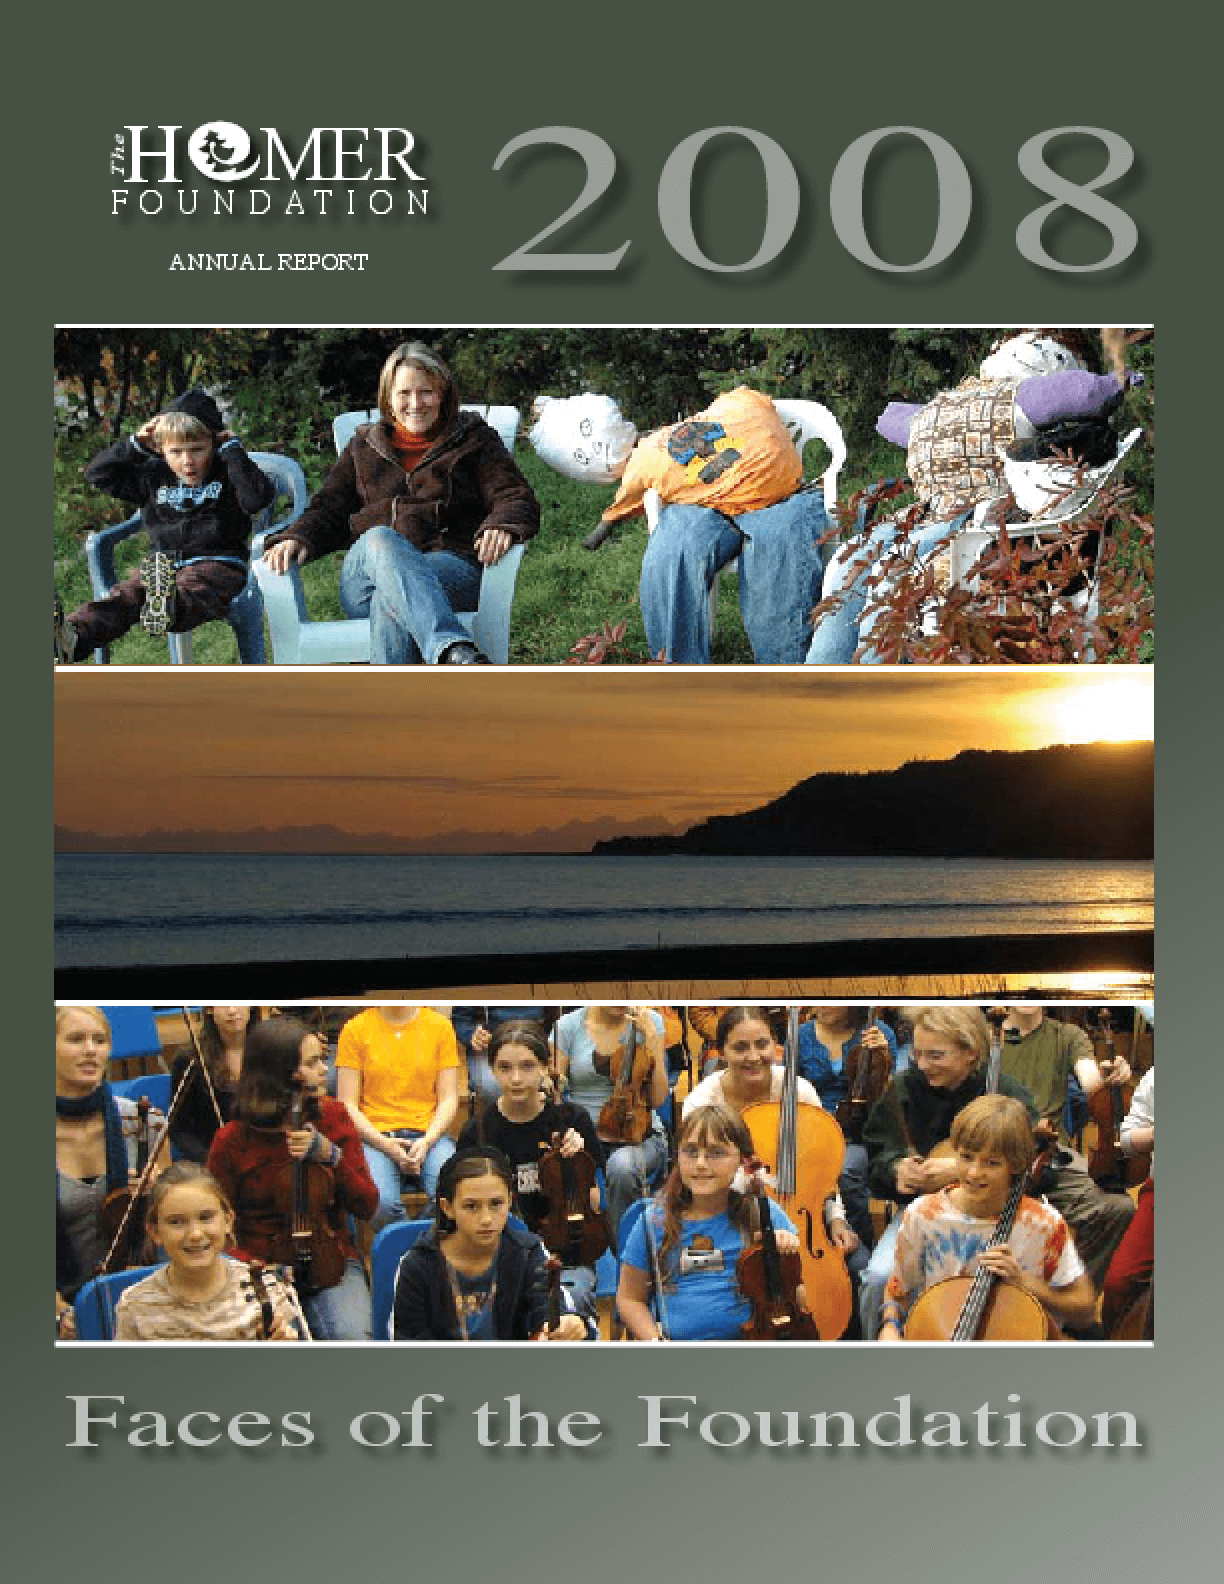 Homer Foundation - 2008 Annual Report